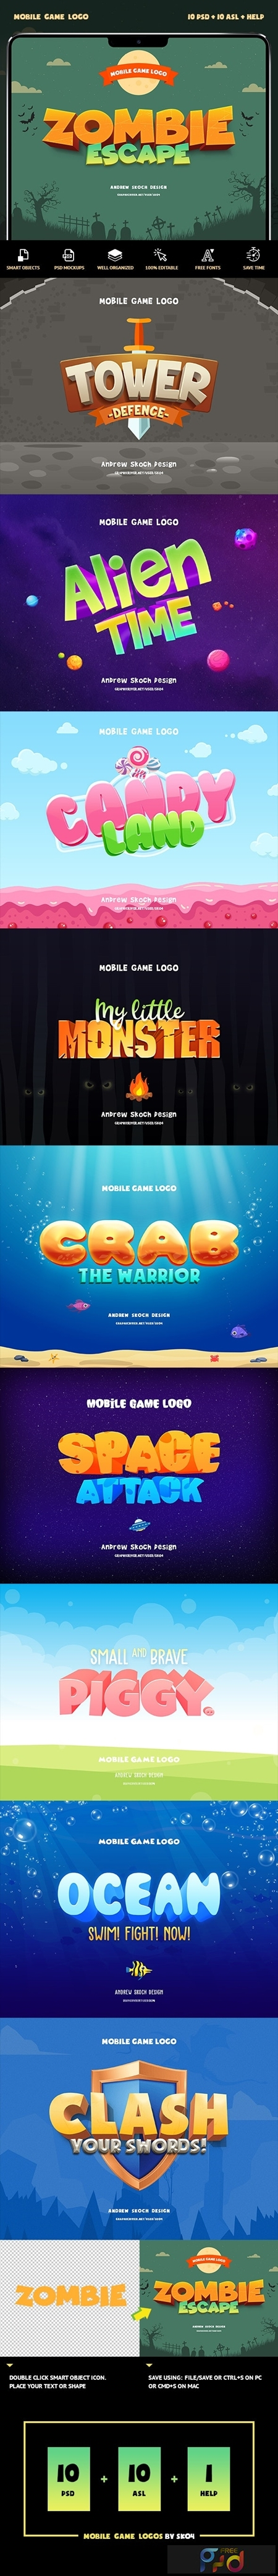 Mobile Game Text Effects vol 1 23376785 1